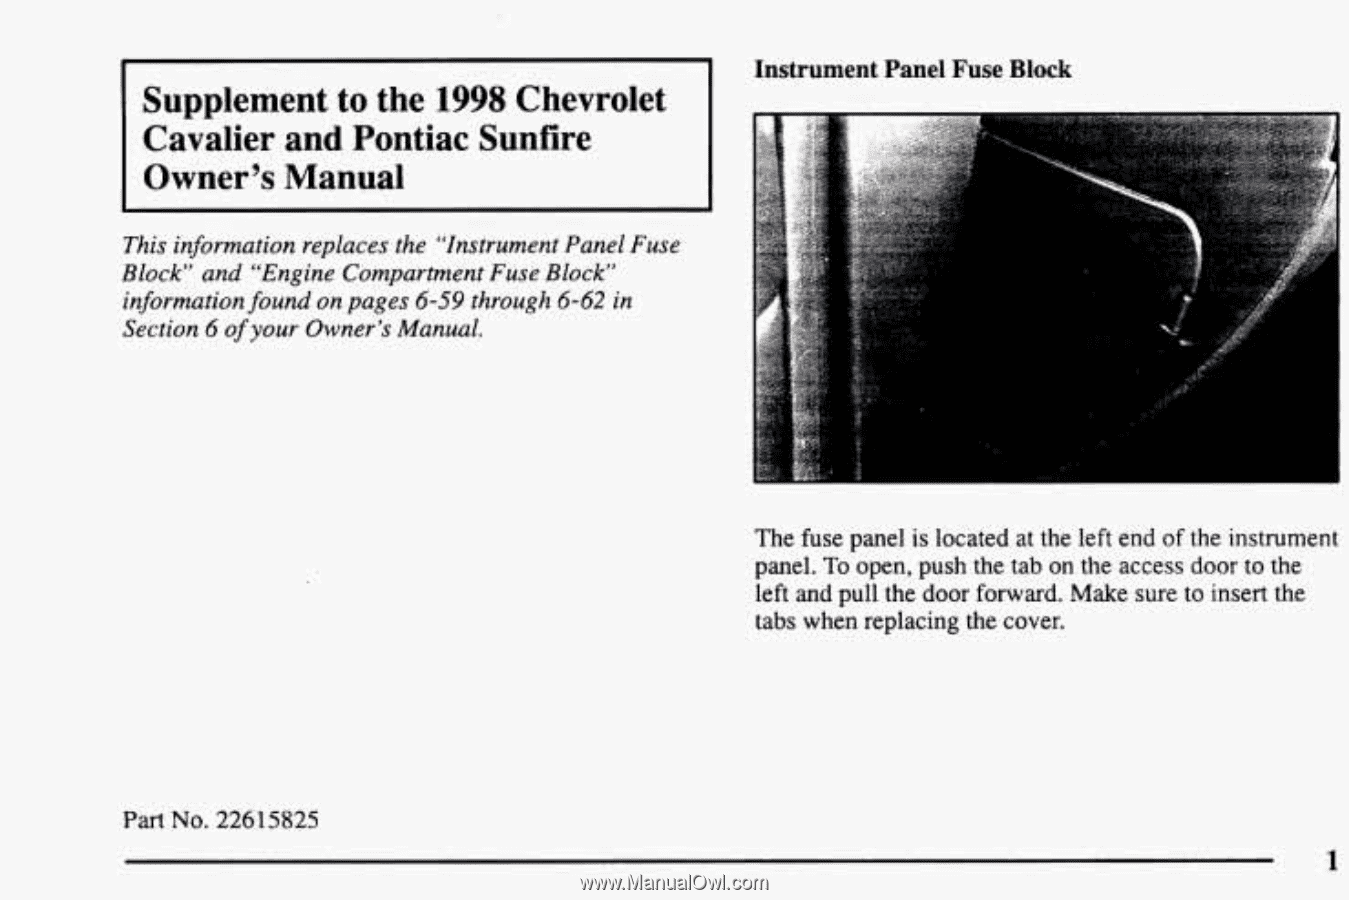 Instrument. Panel. Fuse. Block. Supplement. to. the. 1998. Chevrolet.  Cavalier. and. Pontiac. Sunfire. Owner's. Manual